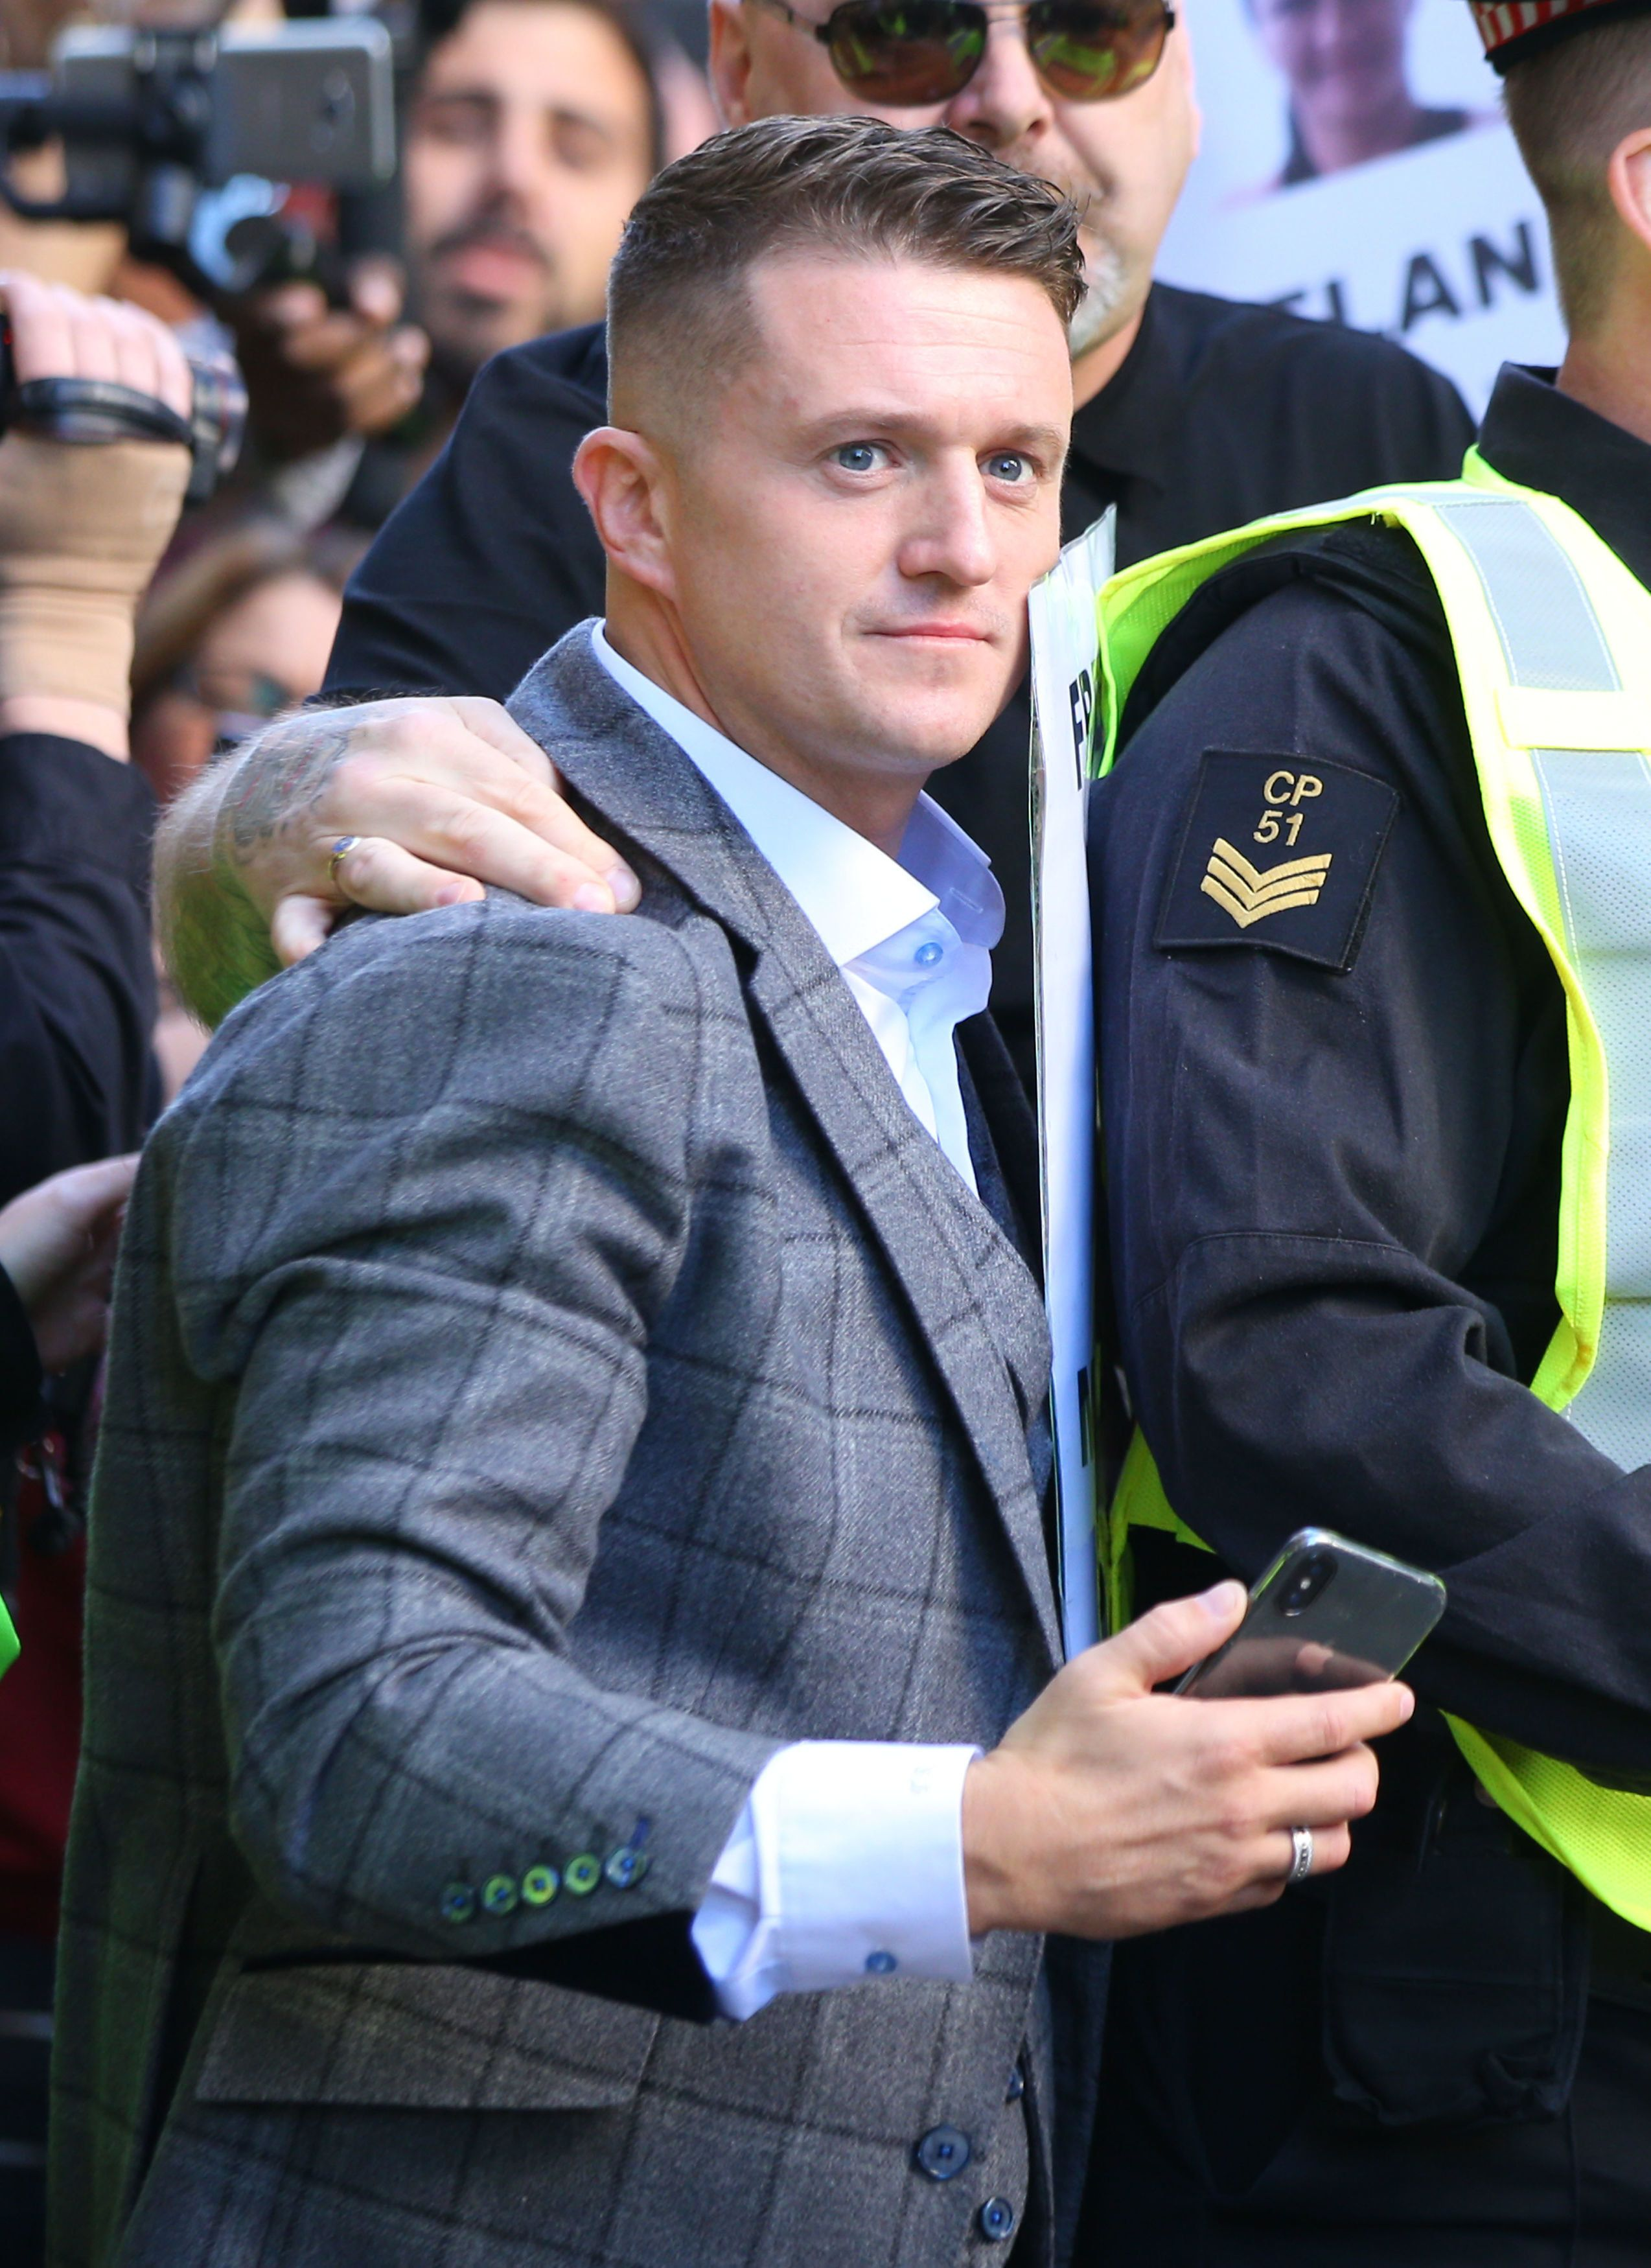 Tommy Robinson, whose real name is Stephen Yaxley-Lennon, is currently banned from entering America.